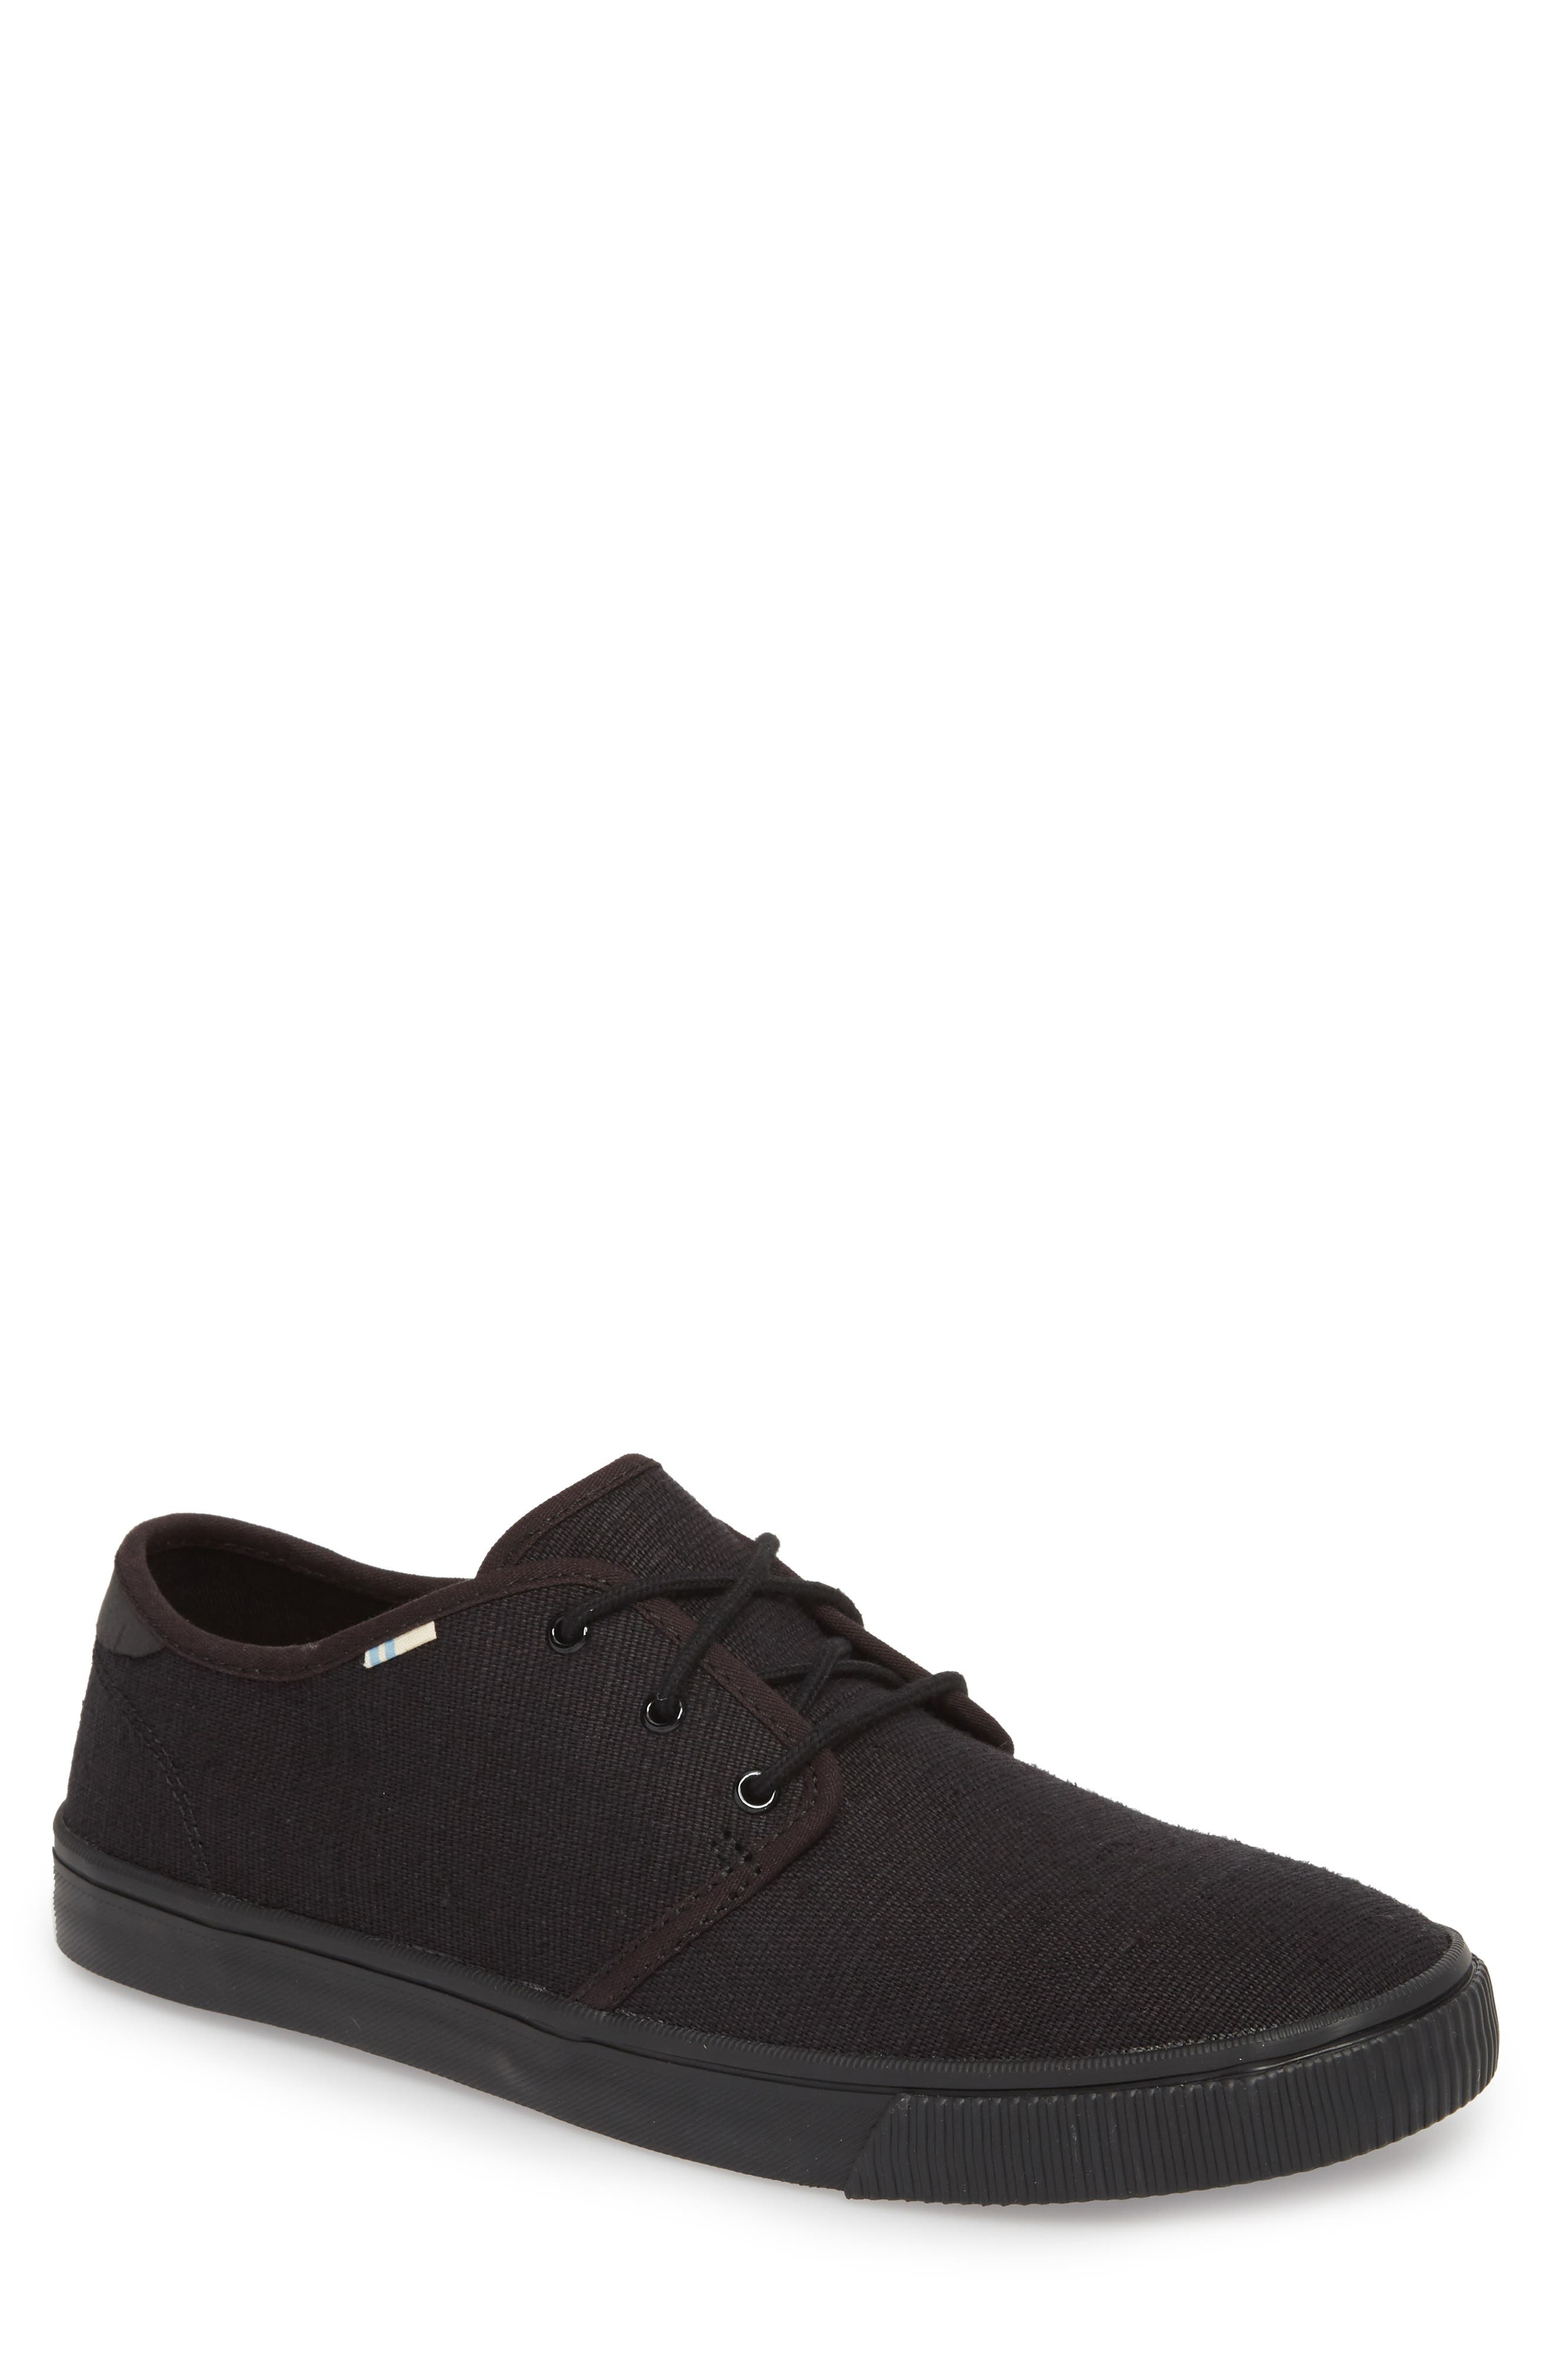 Carlo Low Top Sneaker,                             Main thumbnail 1, color,                             BLACK/ BLACK HERITAGE CANVAS